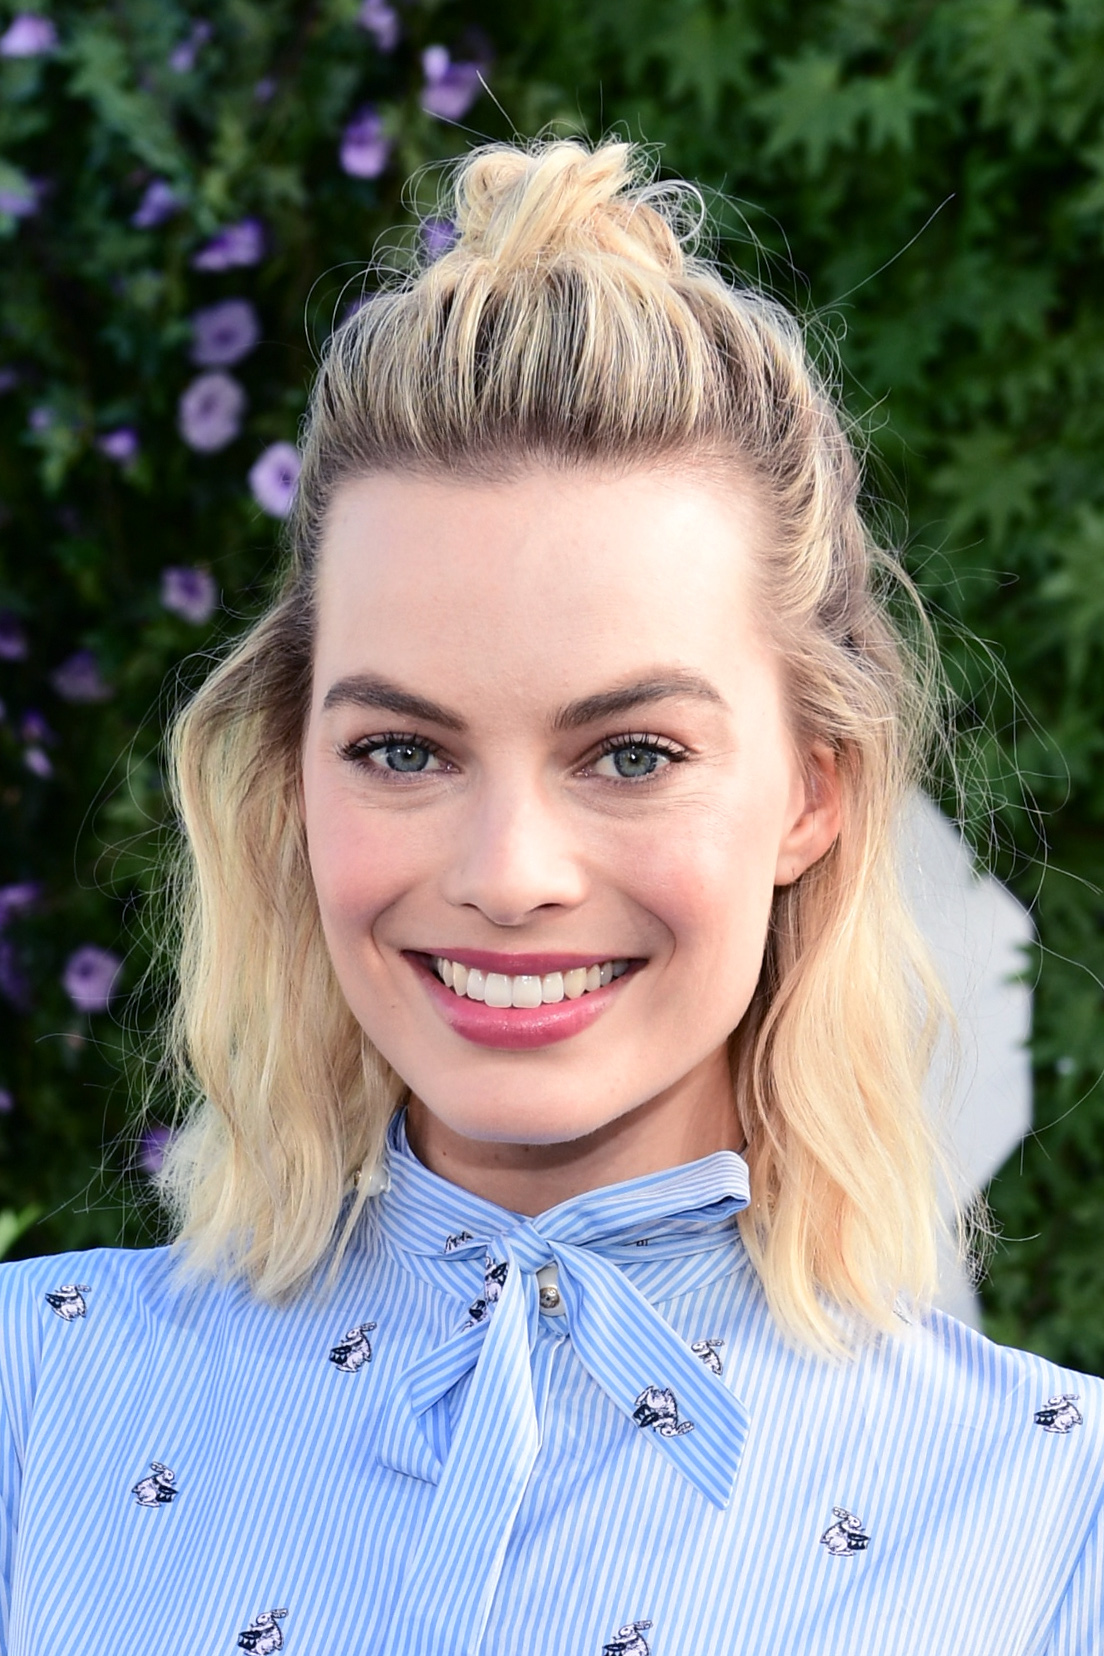 WEST HOLLYWOOD, CA - FEBRUARY 02: Margot Robbie attends the photo call for Columbia Pictures' 'Peter Rabbit' at The London Hotel on February 2, 2018 in West Hollywood, California. (Photo by Emma McIntyre/Getty Images)